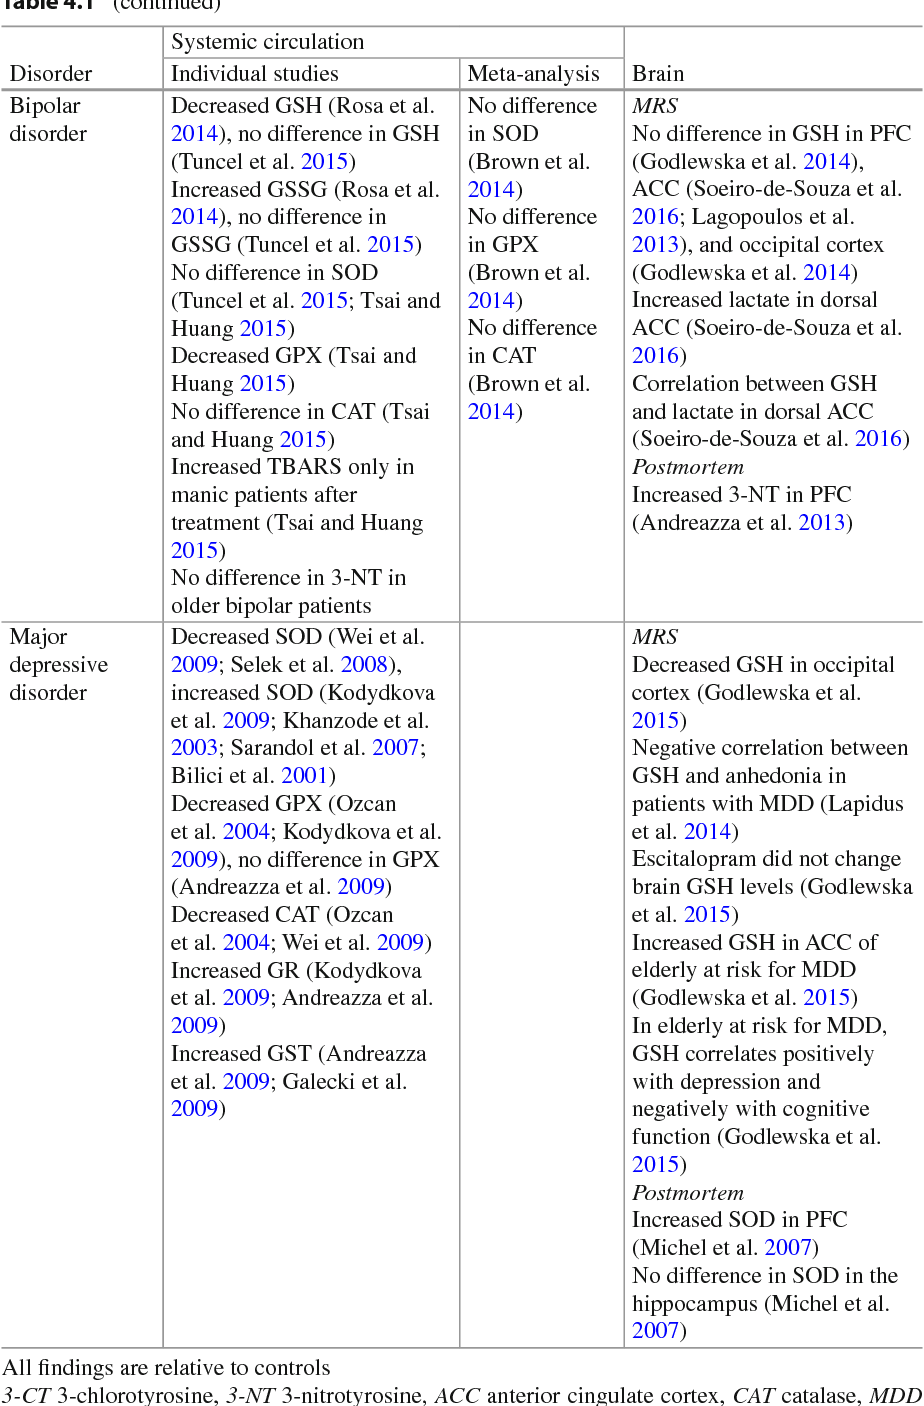 Table 4 1 from The Therapeutic Use of N-Acetylcysteine (NAC